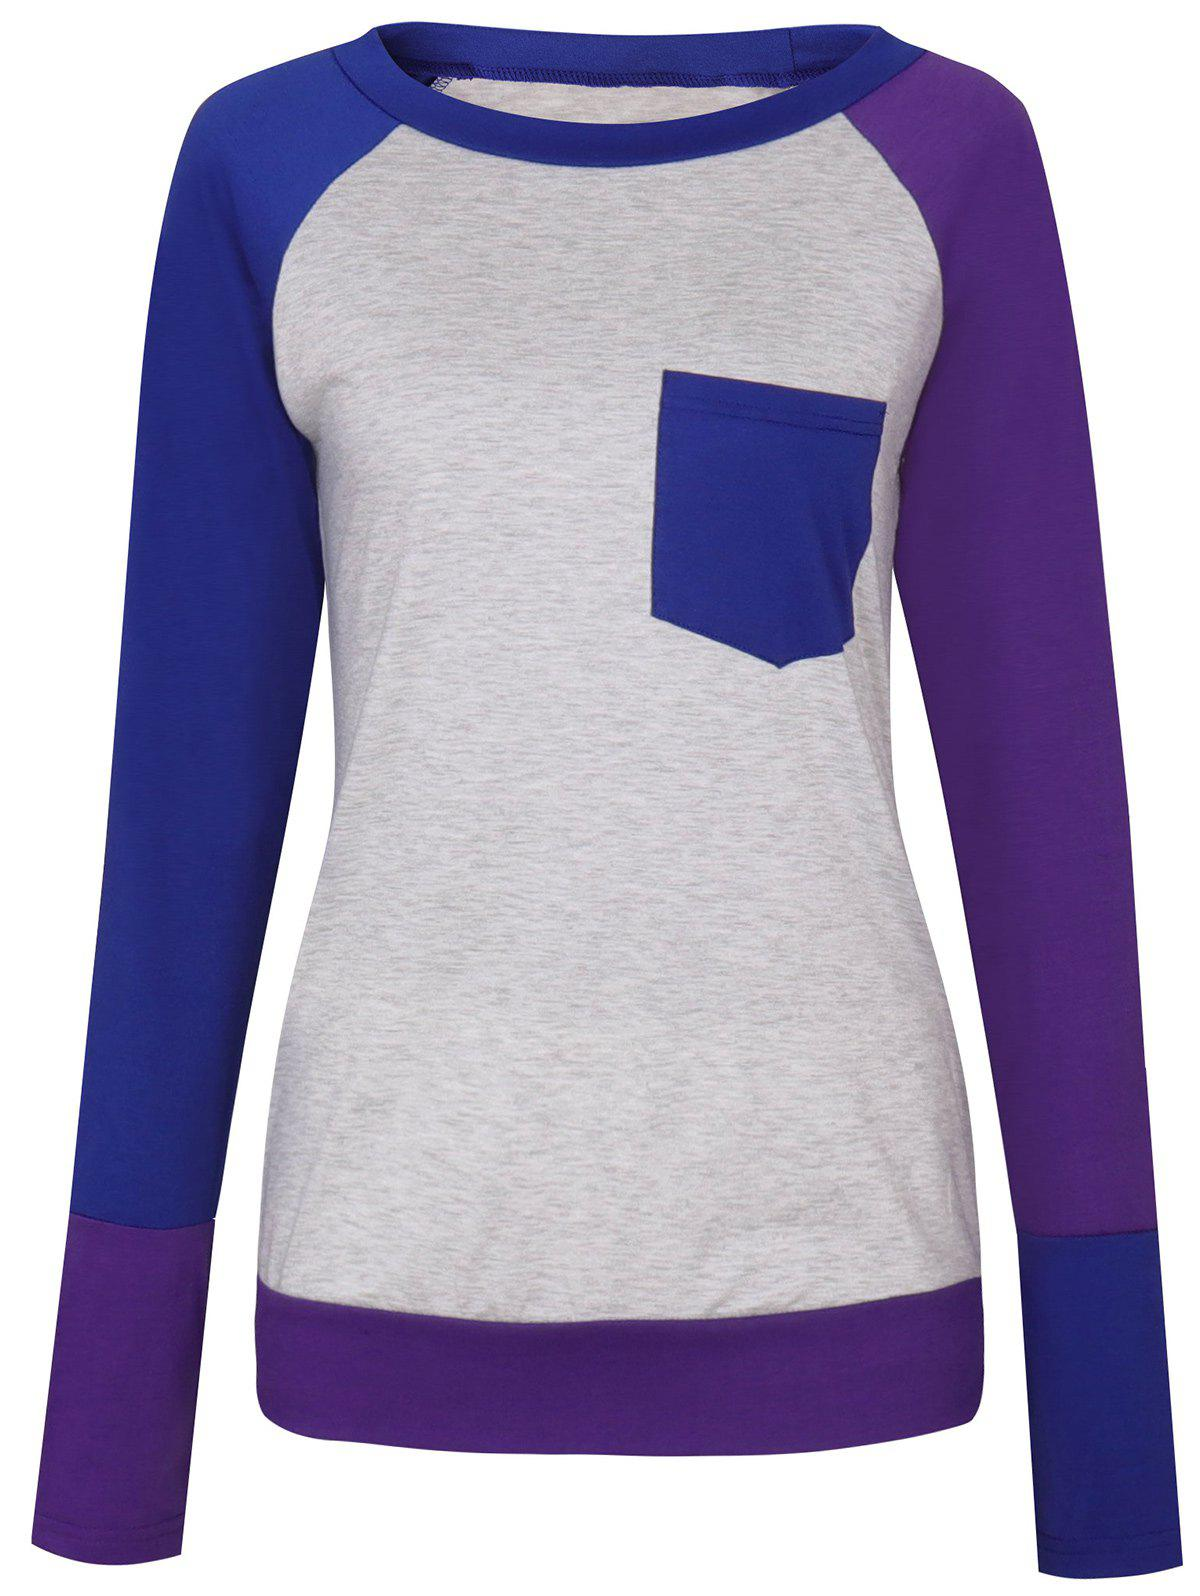 Color Block Raglan Sleeve Pocket T-shirt - PURPLE S